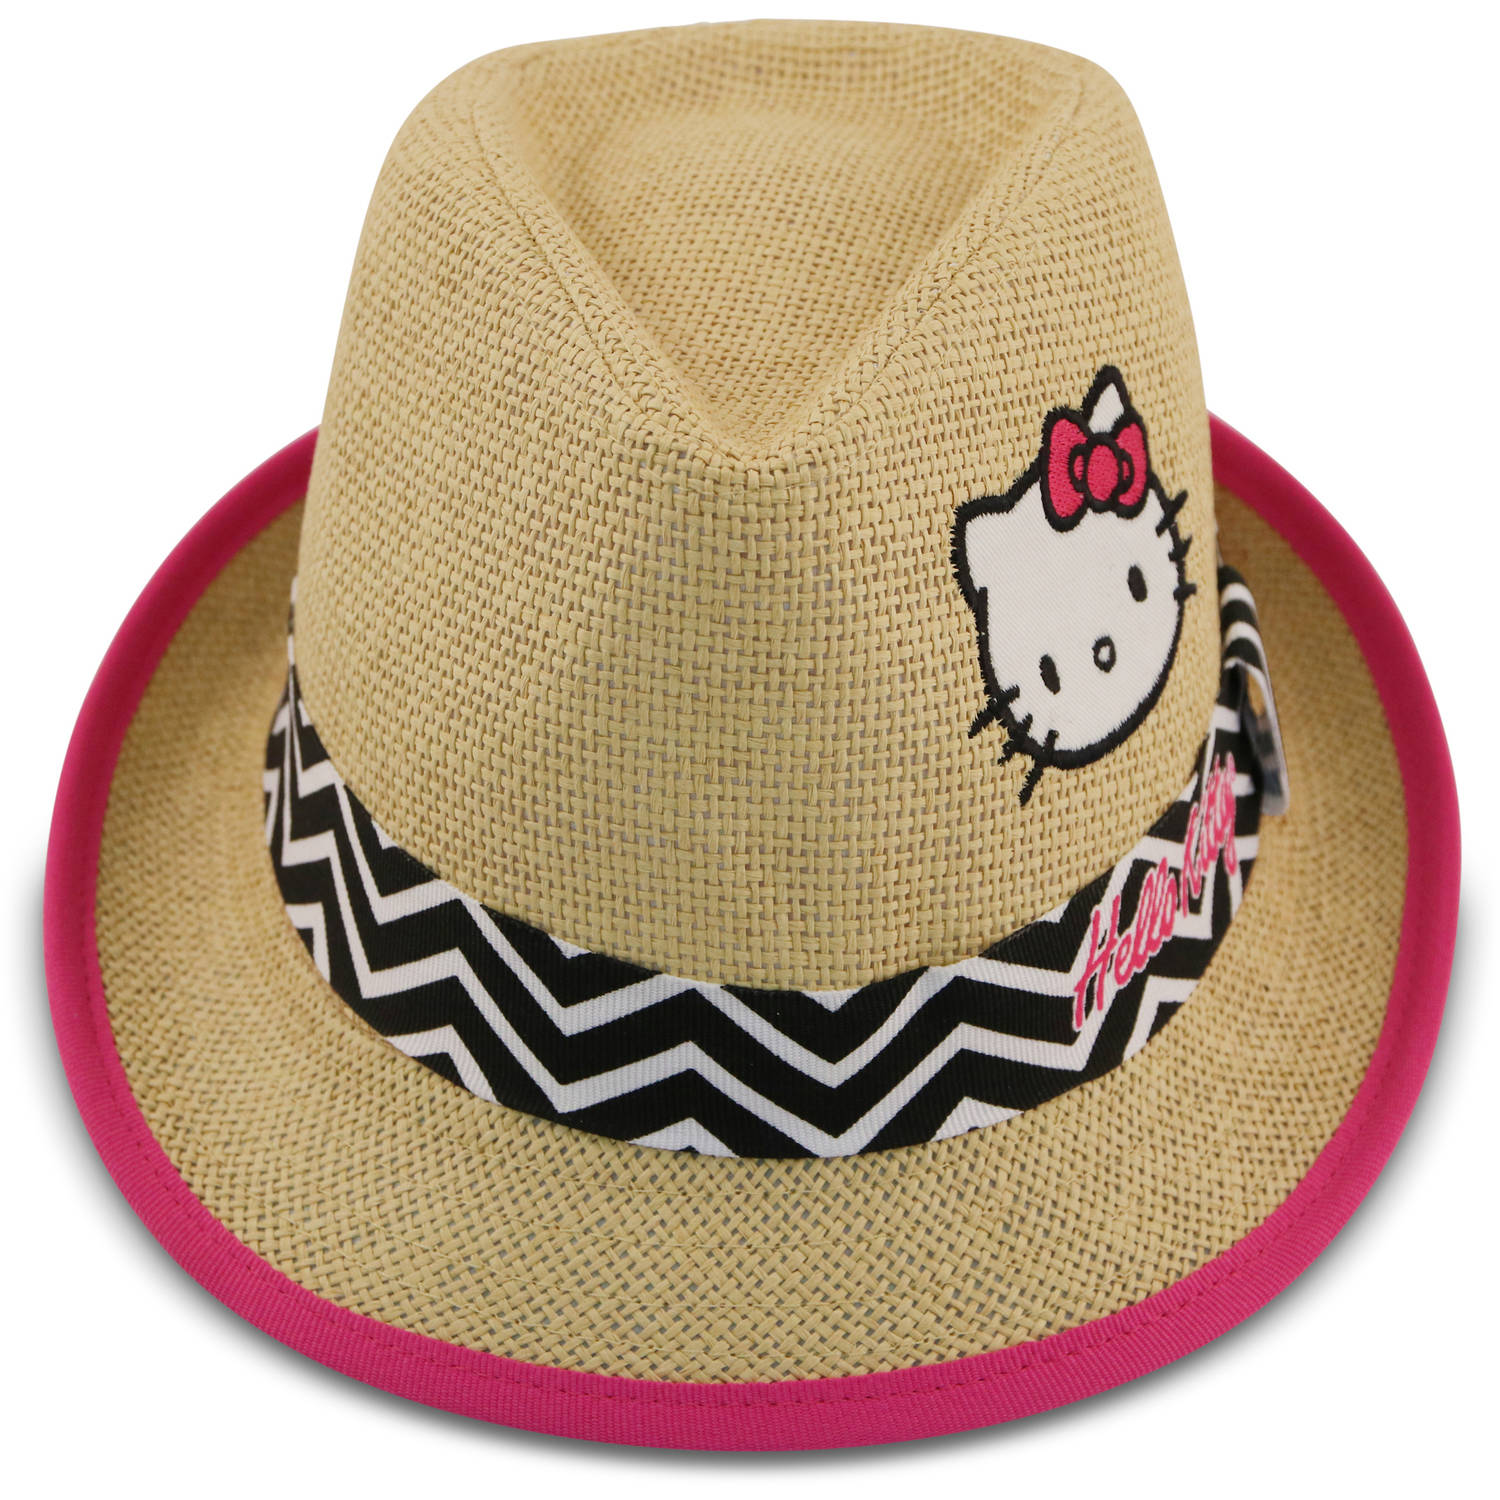 Sanrio Hello Kitty natural straw fedora with black and white chevron band.